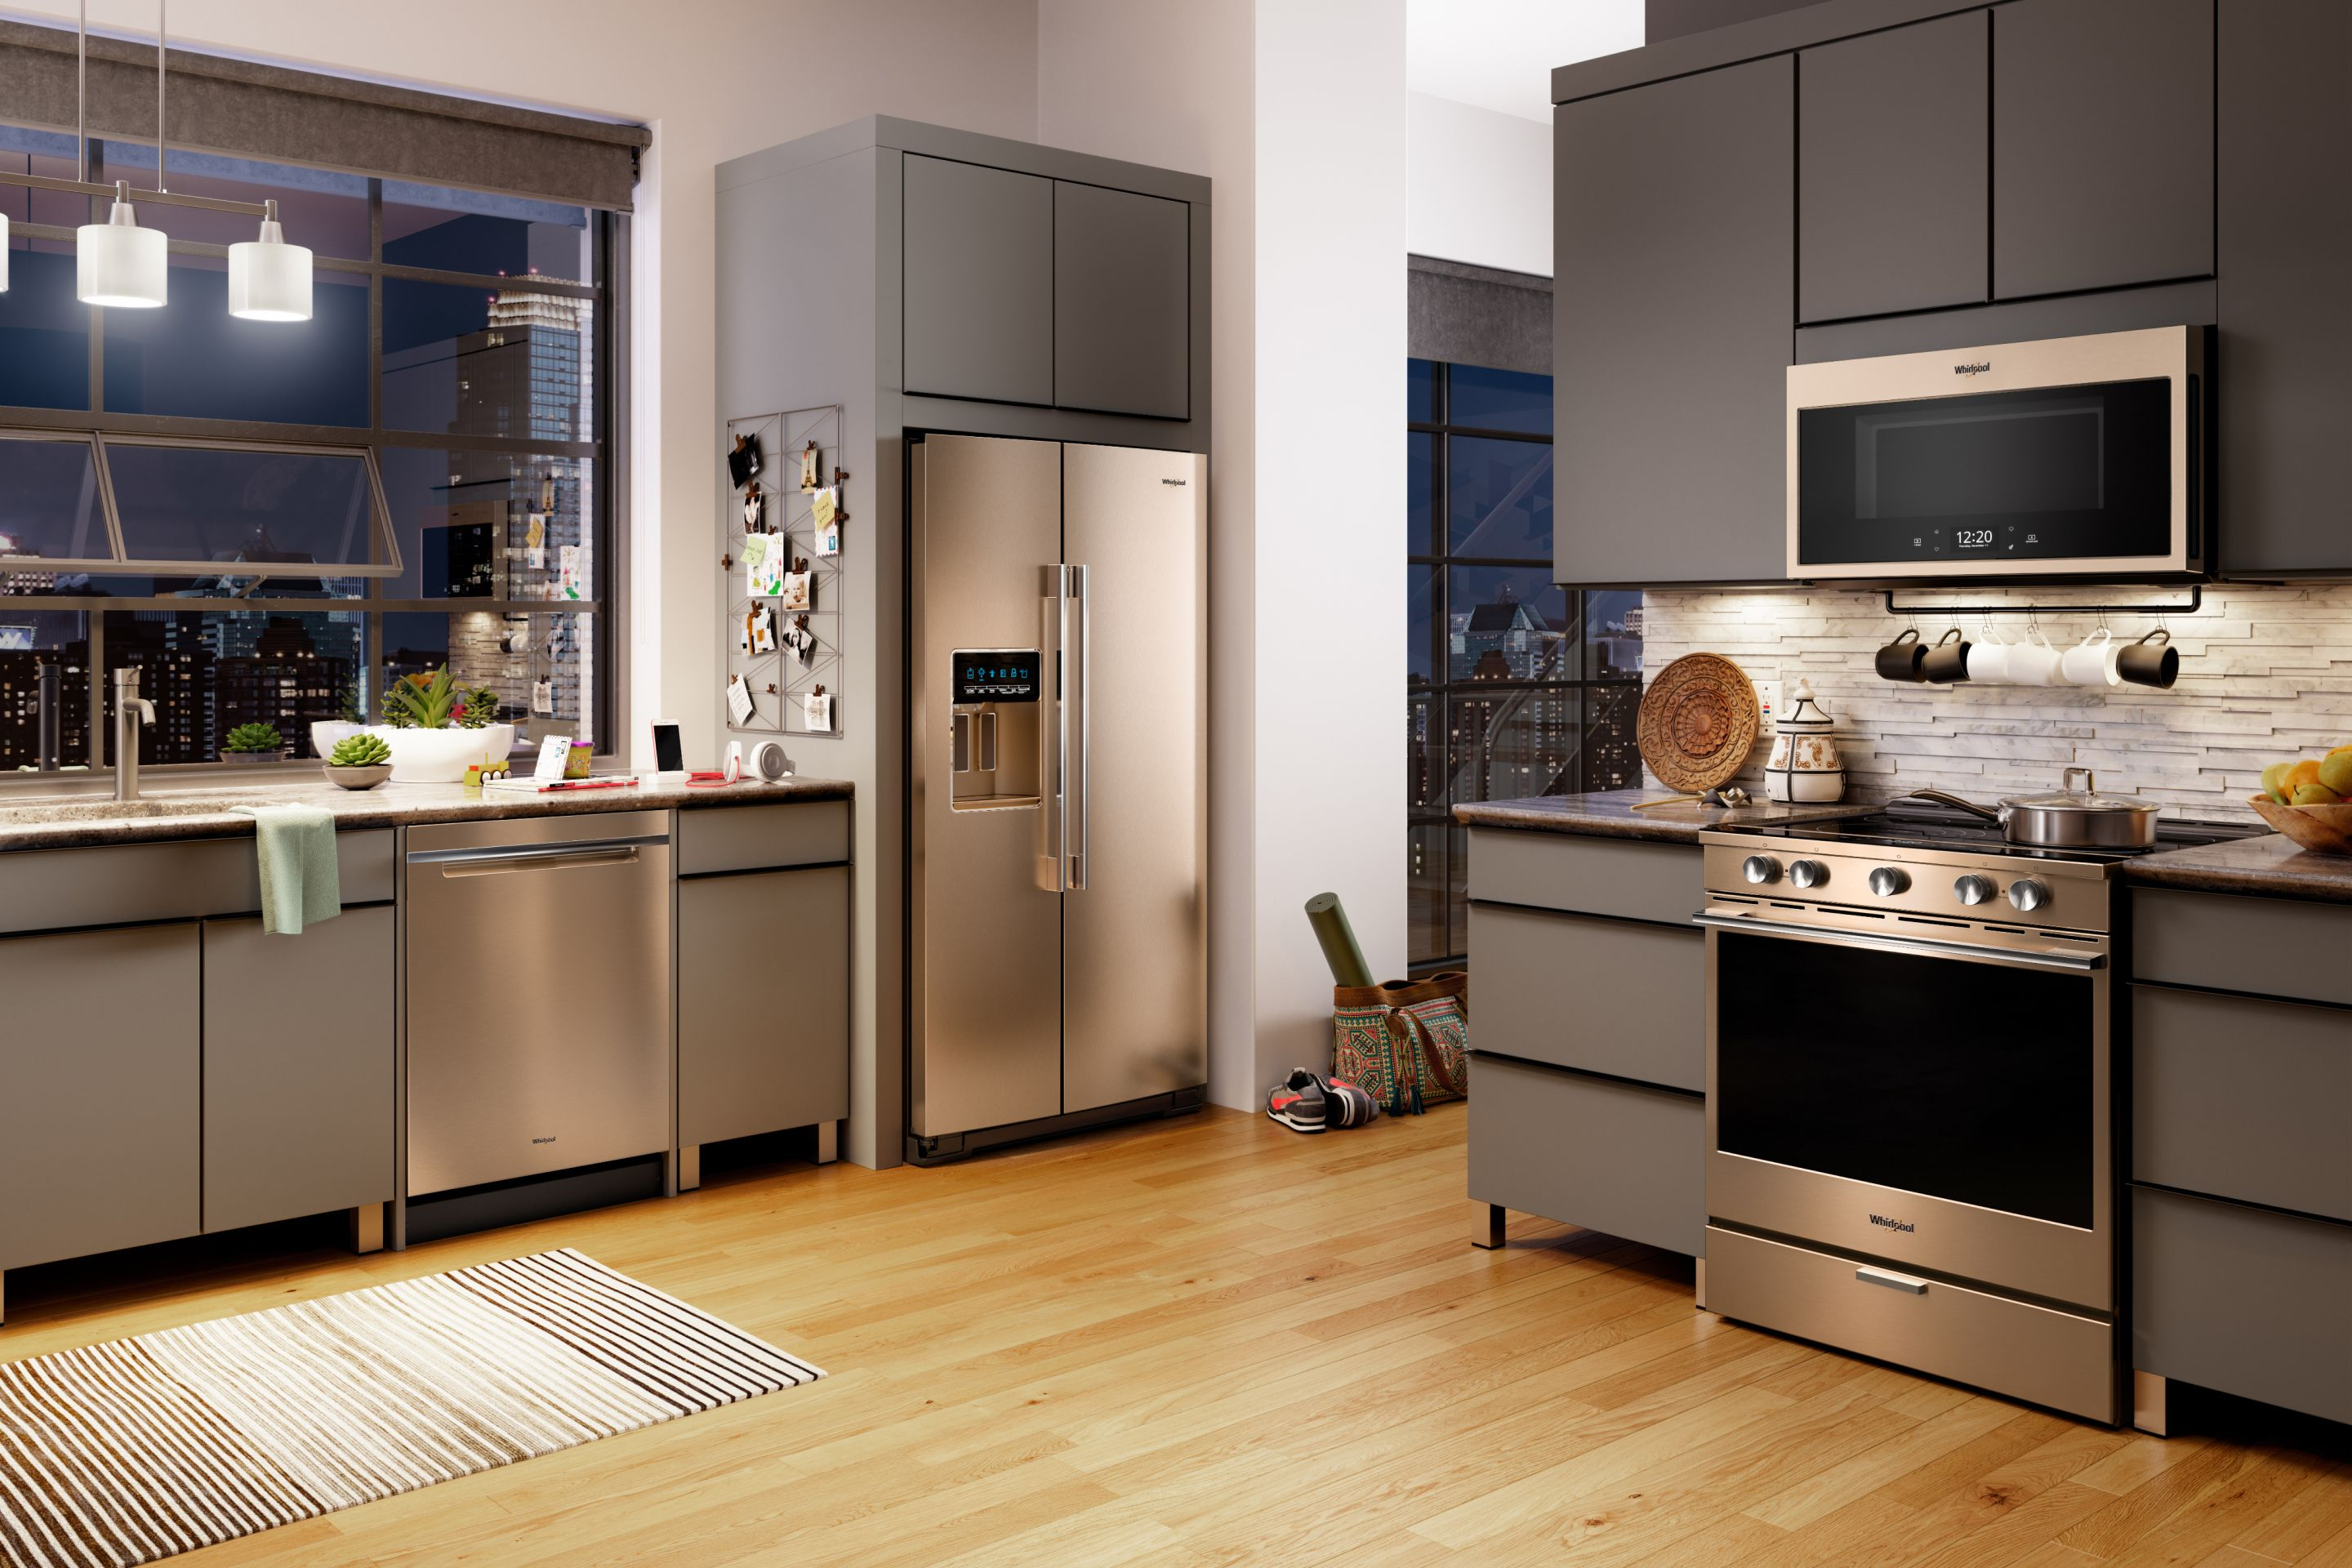 Find Your Kitchen Style with our Design Tool   Whirlpool Kitchen Ideas White With Dark Countertops Html on white cabinets with countertops, white kitchen with black appliances, white kitchen dark granite, white kitchens with dark trim, white kitchens with dark blinds, white kitchen dark wood floors, white kitchen soapstone countertops, white cabinets dark countertops, white kitchen countertop choices, white kitchens with dark floors, white kitchen dark floor and countertops, white kitchens with dark islands, white kitchens with an island, white kitchen with wood countertops, white kitchens with dark wood, white cabinets with dark granite, white subway tile kitchen backsplash ideas, white kitchen flooring, white kitchen dark counters, white kitchens with dark windows,